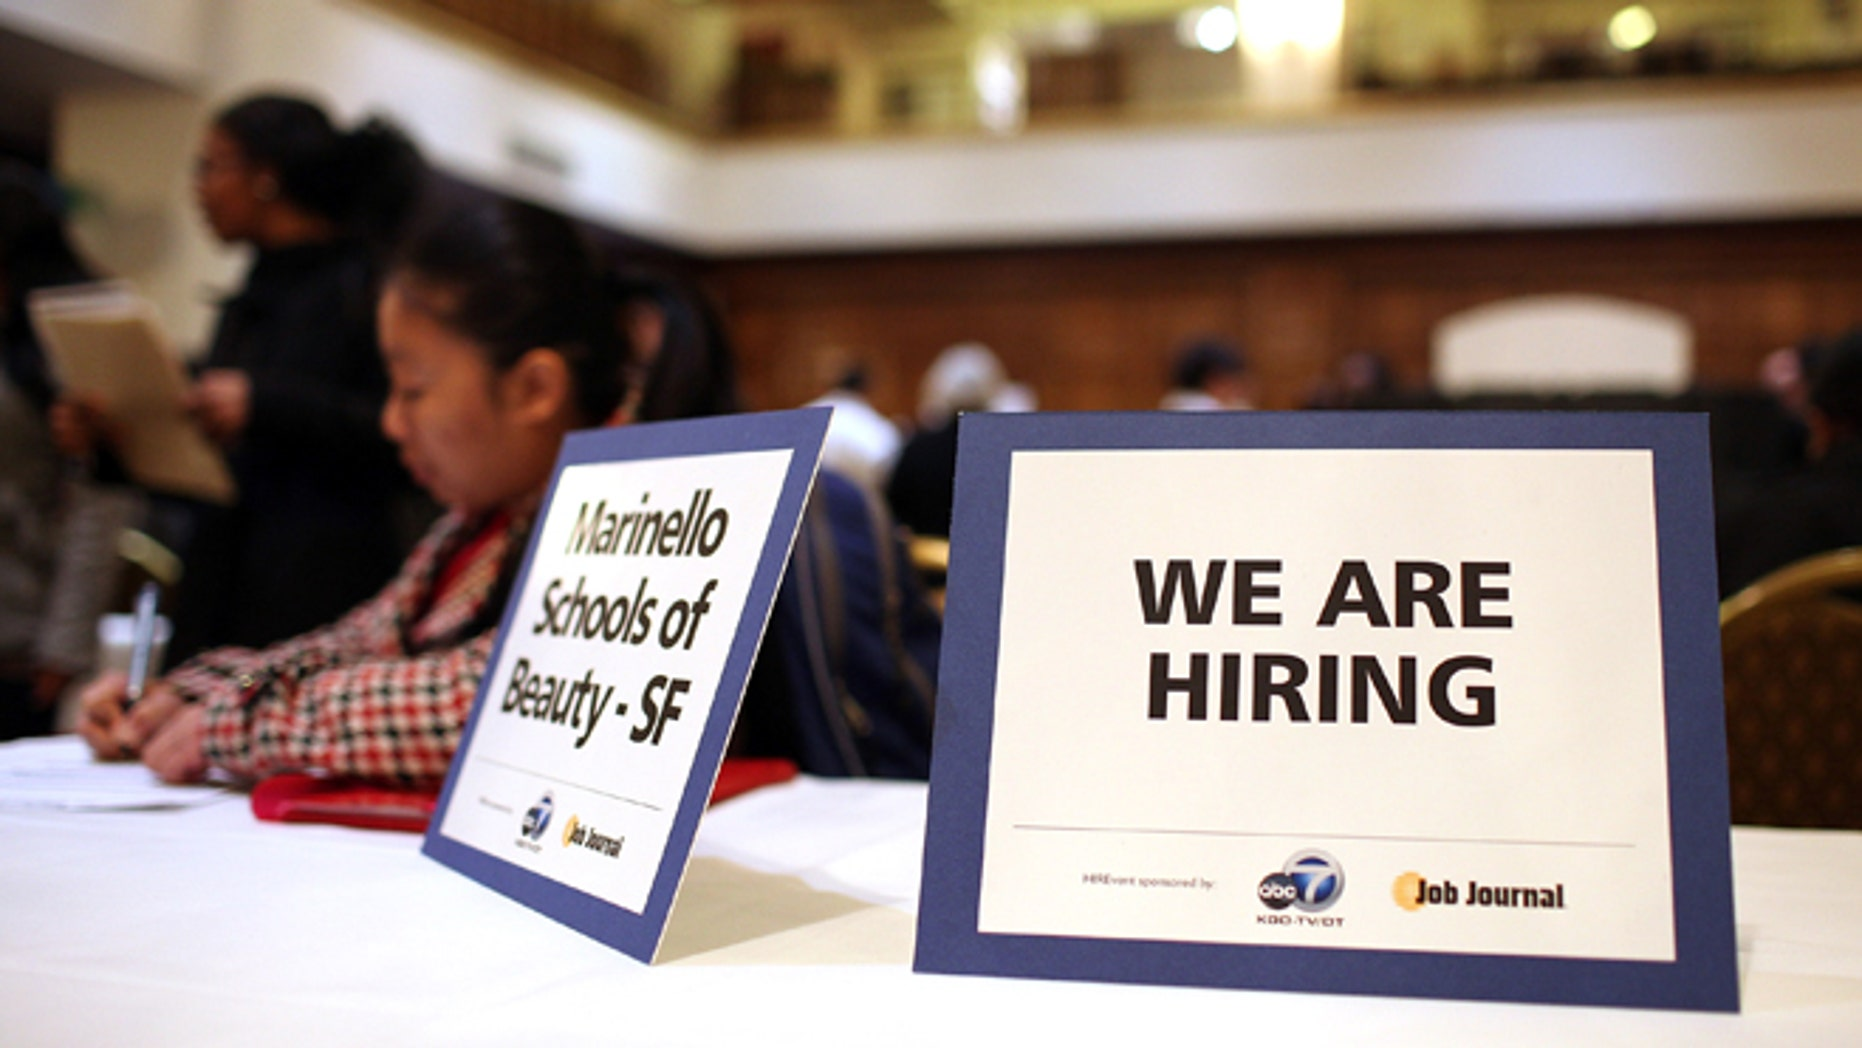 "SAN FRANCISCO, CA - MARCH 27:  A ""we are hiring"" sign is displayed on a table during the San Francisco Hirevent job fair at the Hotel Whitcomb on March 27, 2012 in San Francisco, California. As the national unemployment rate stands at 8.3 percent, job seekers turned out to meet with recruiters at the San Francisco Hirevent job fair where hundreds of jobs were available.  (Photo by Justin Sullivan/Getty Images)"